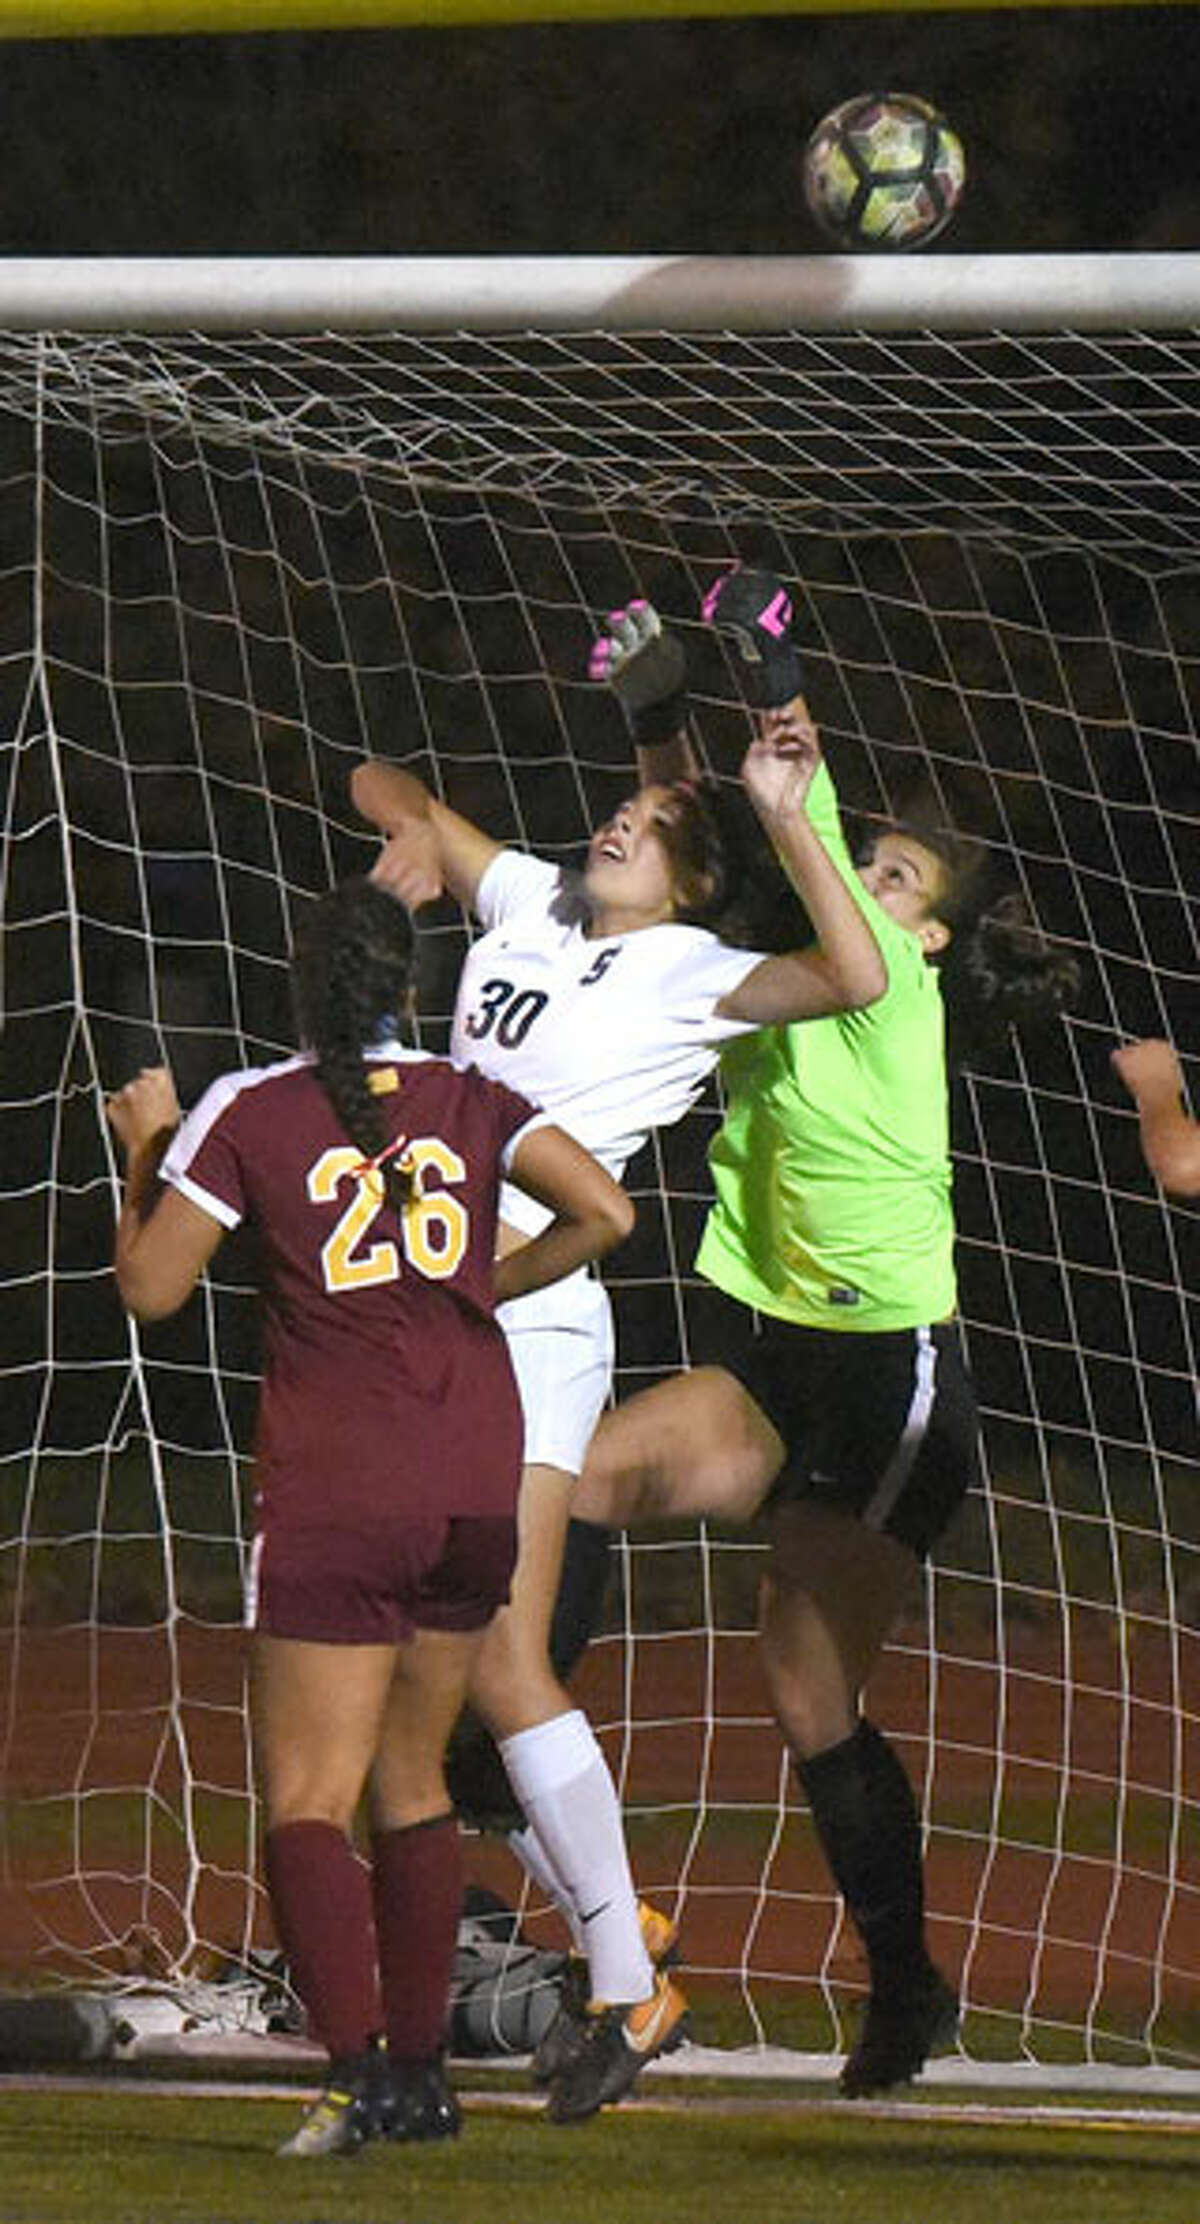 St. Joseph goalie Veronica O'Rourke punches a last-second shot by Staples over the crossbar. - Dave Stewart/HAN Network photo